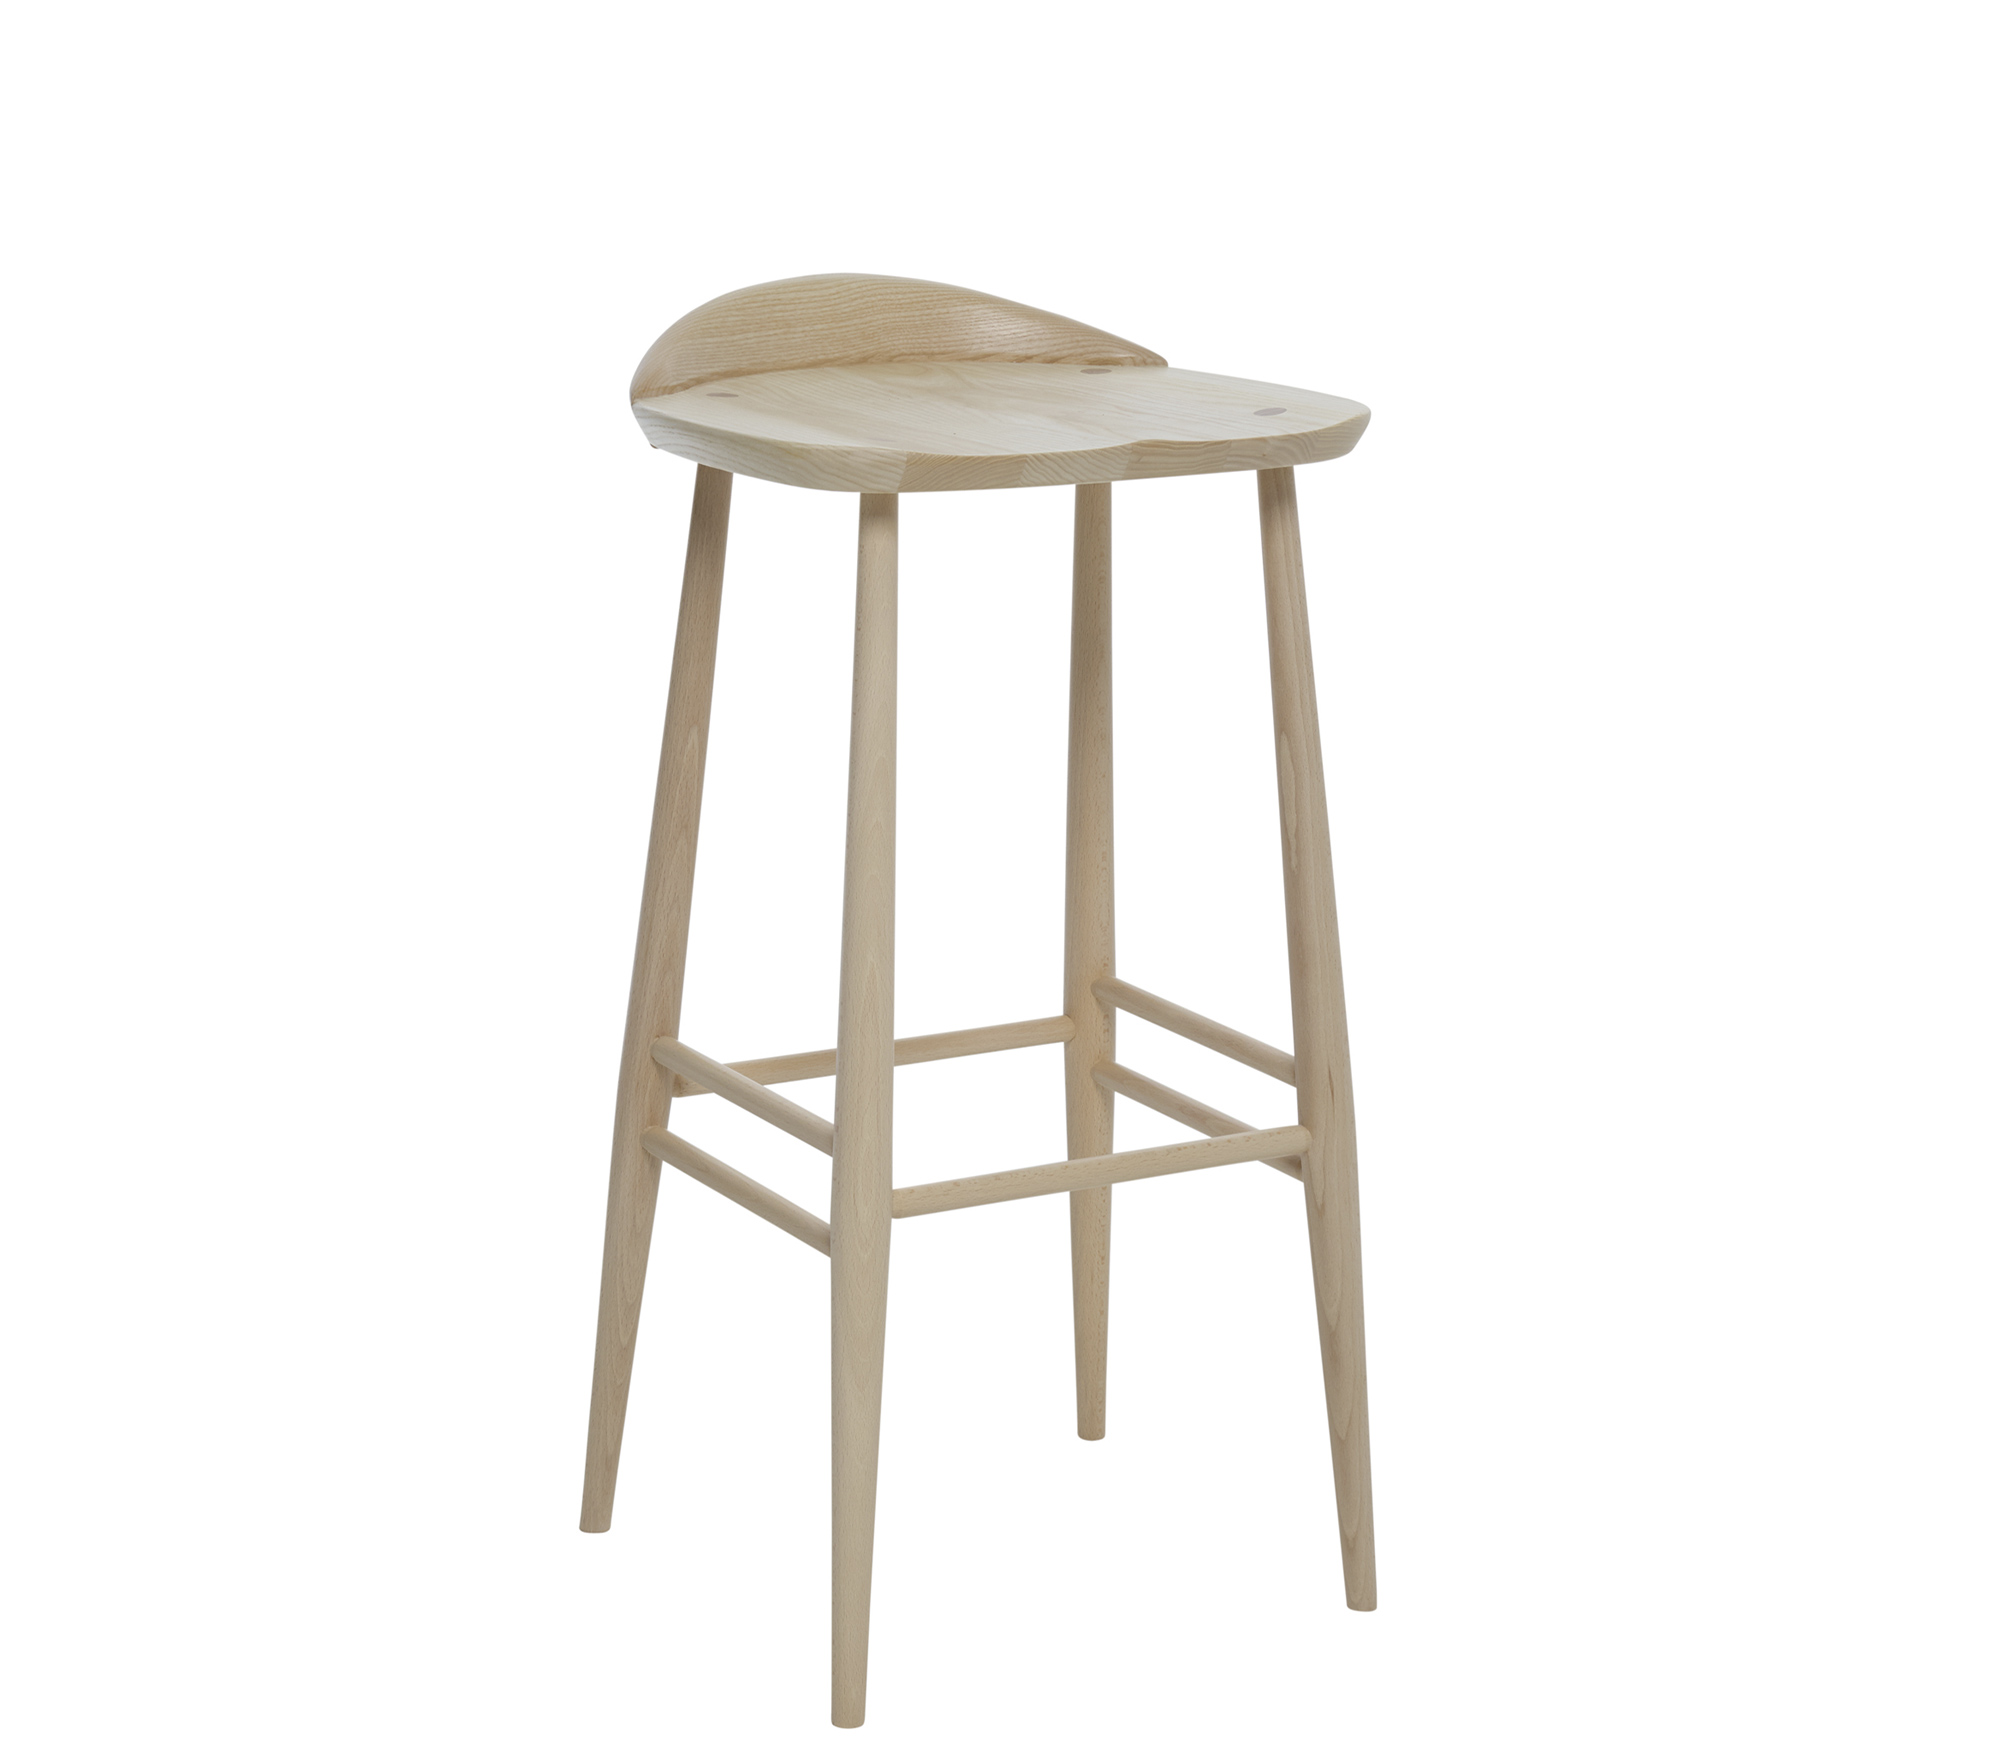 Originals Bar Stool With Back Ercol Furniture